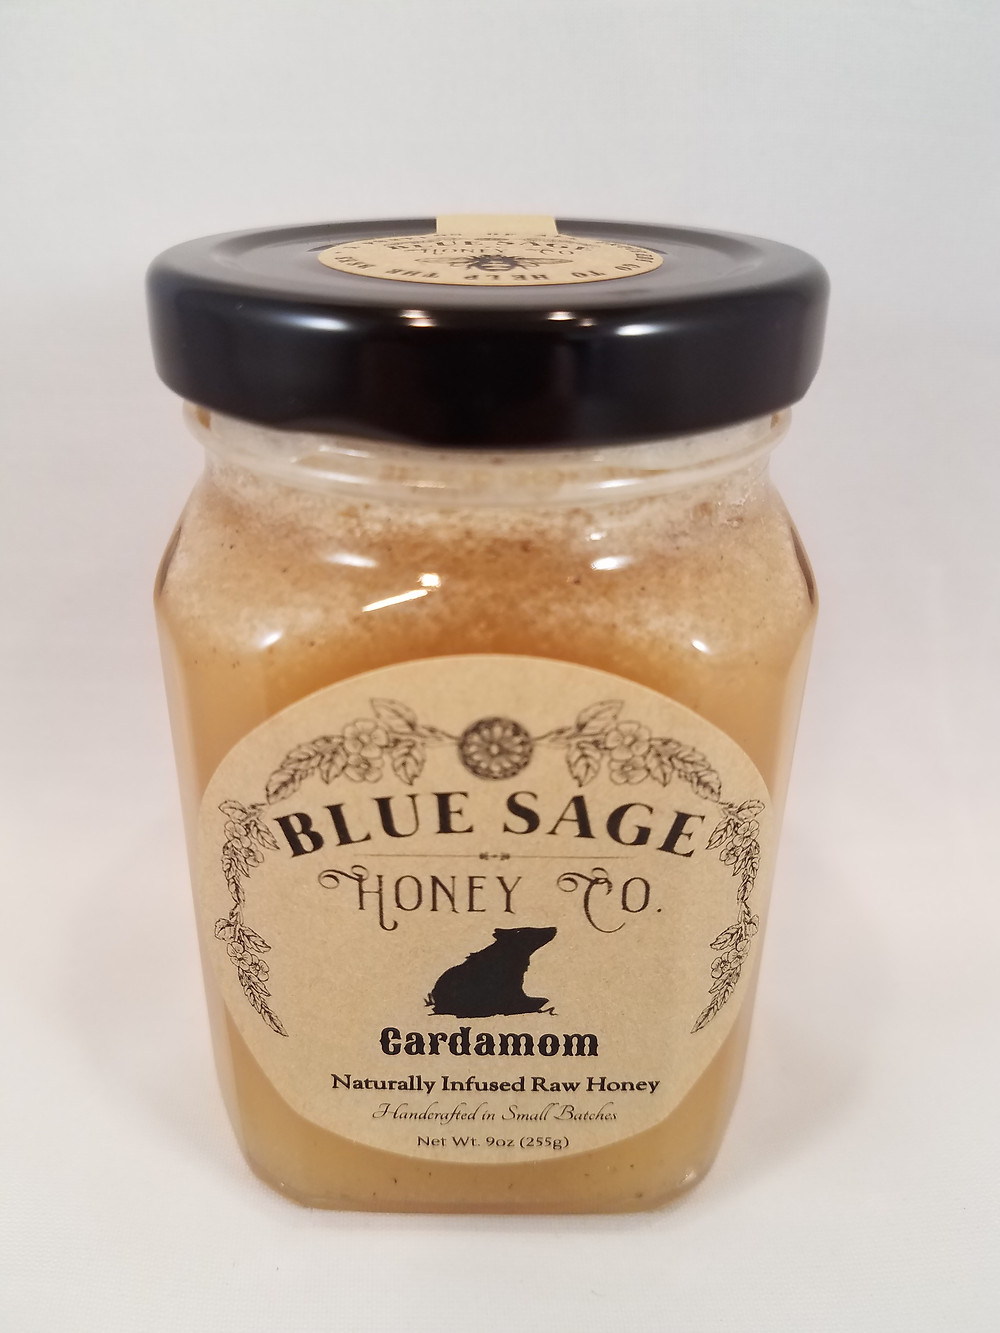 Cardamom Infused Raw Honey